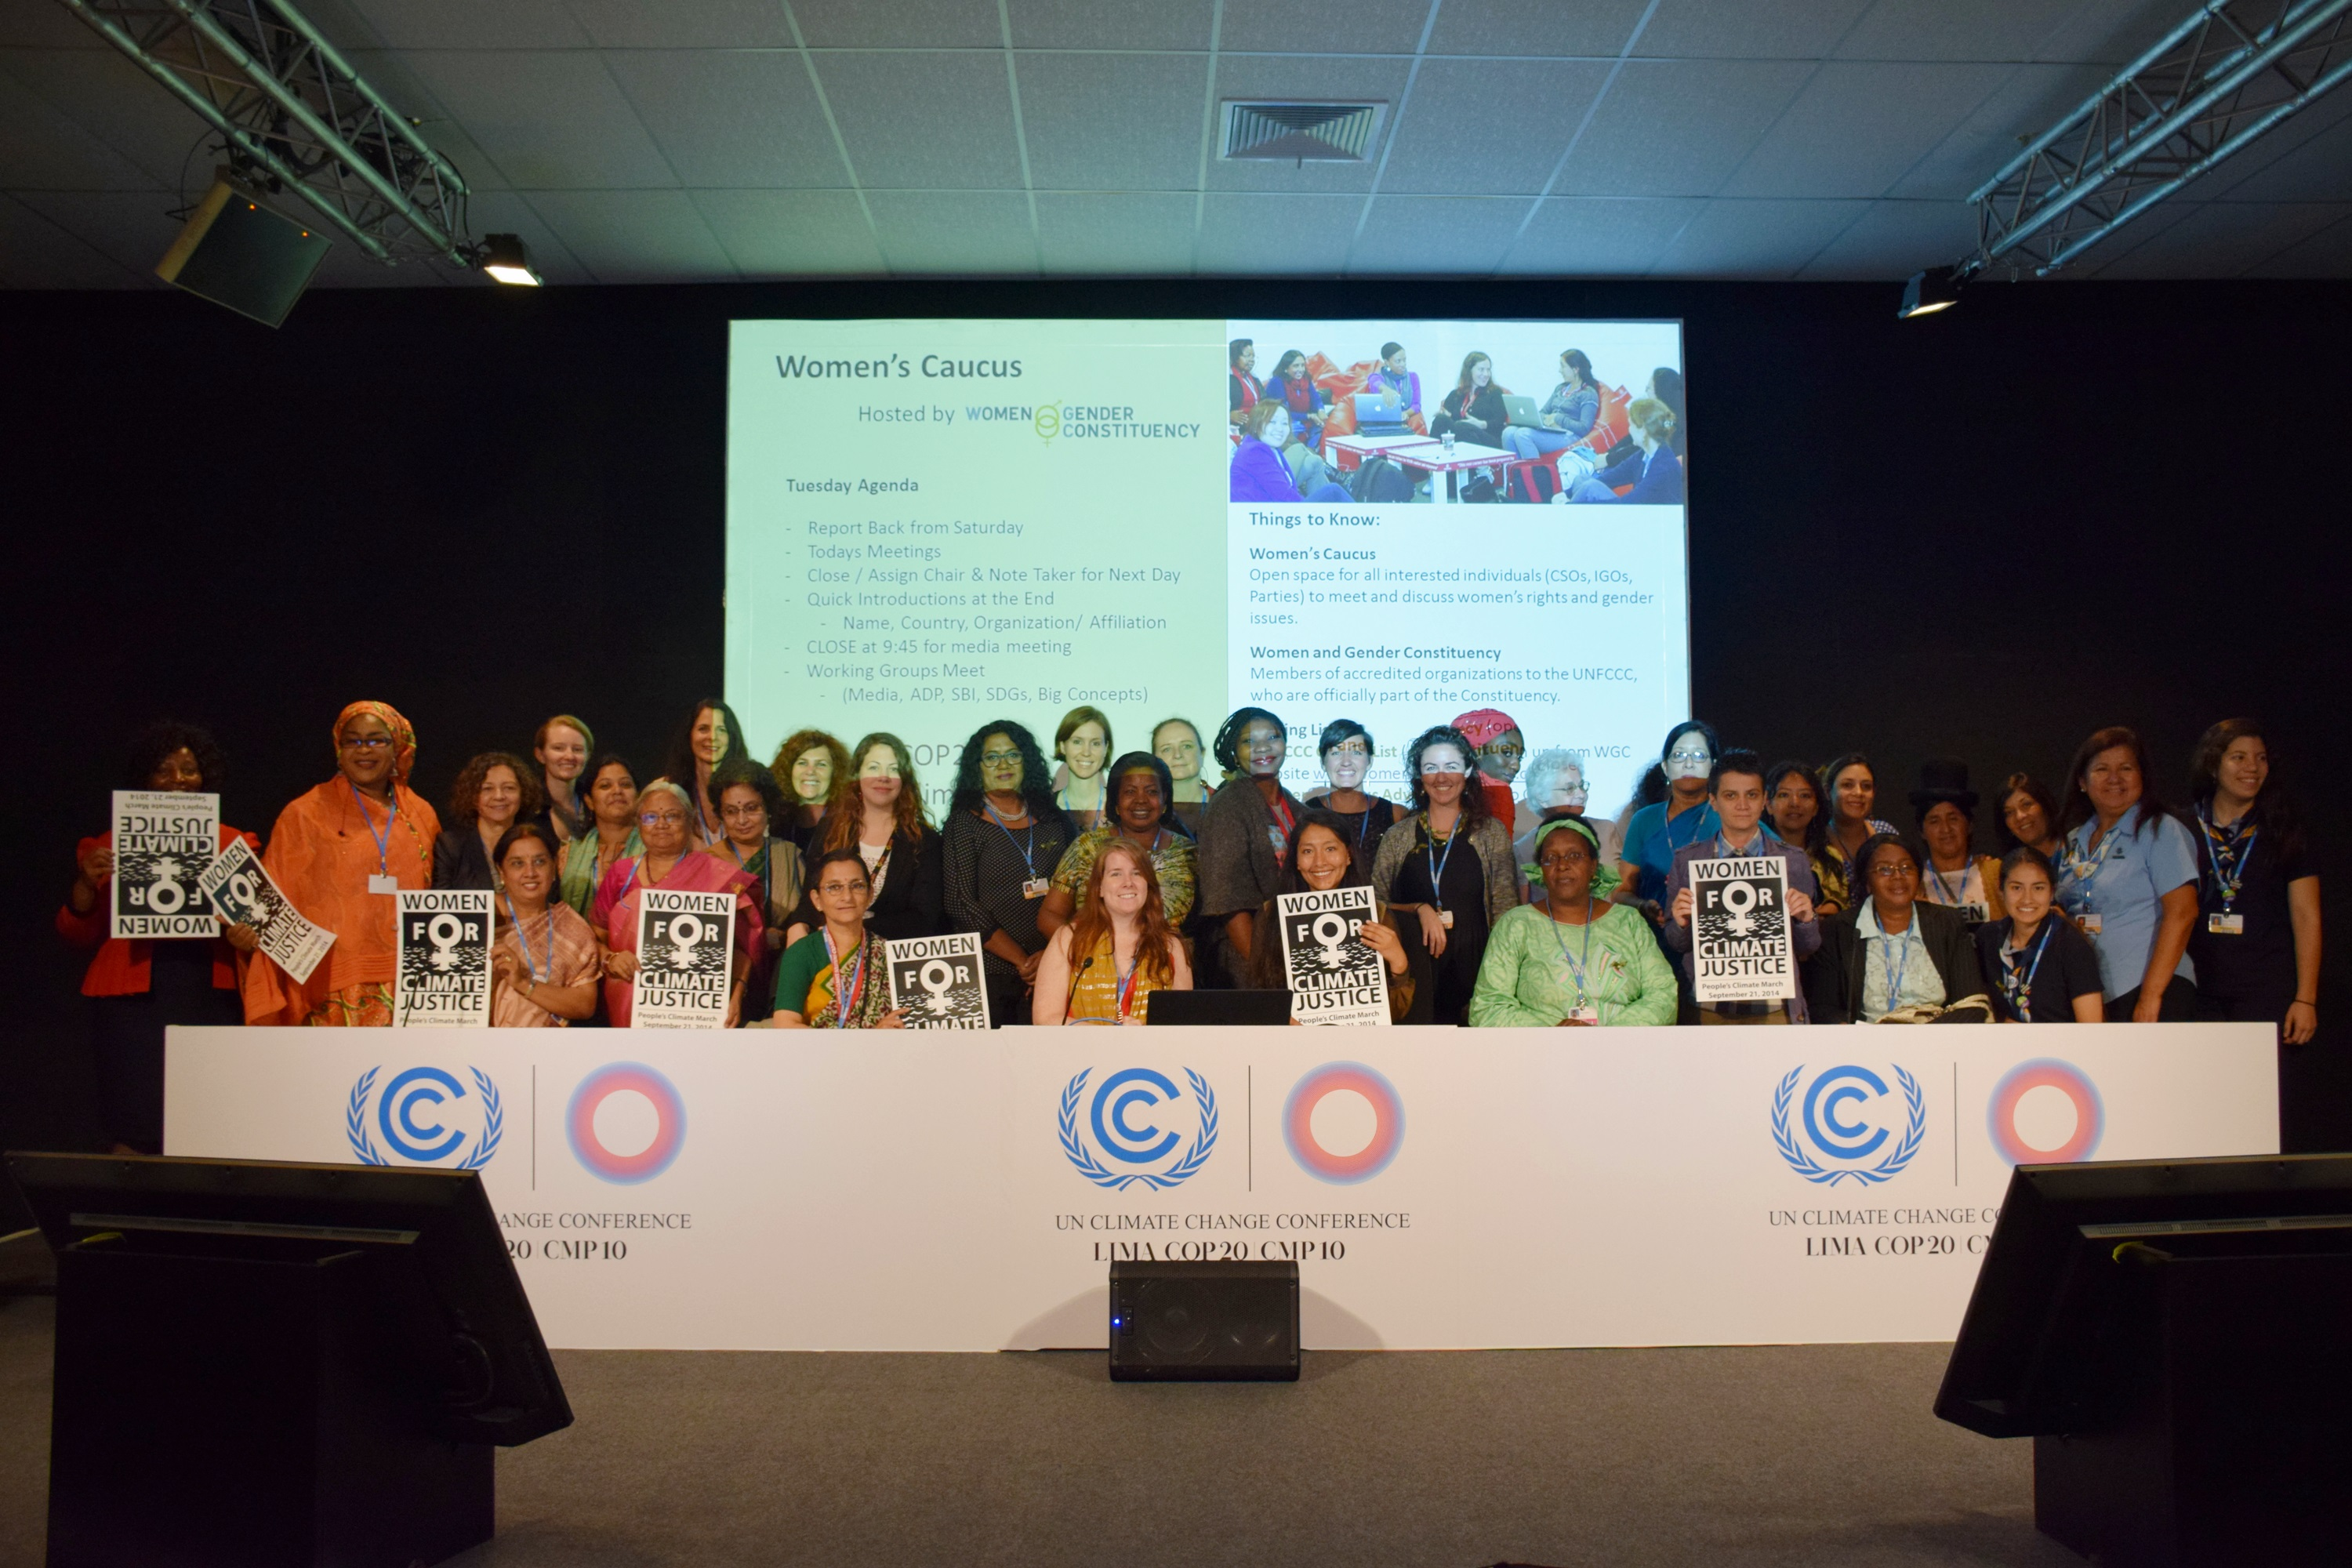 position paper on negotiations on climate Position paper: human rights and climate justice resolution 10/4 informed the united nations framework convention on climate change (unfccc) negotiations.